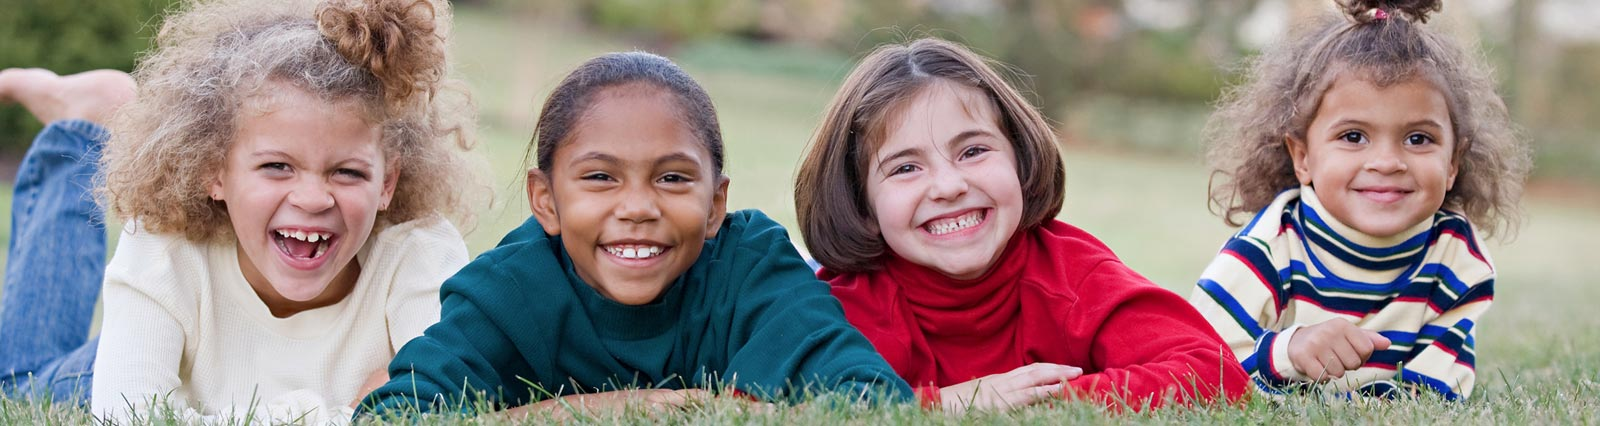 Contact Midlands Pediatric Dentistry